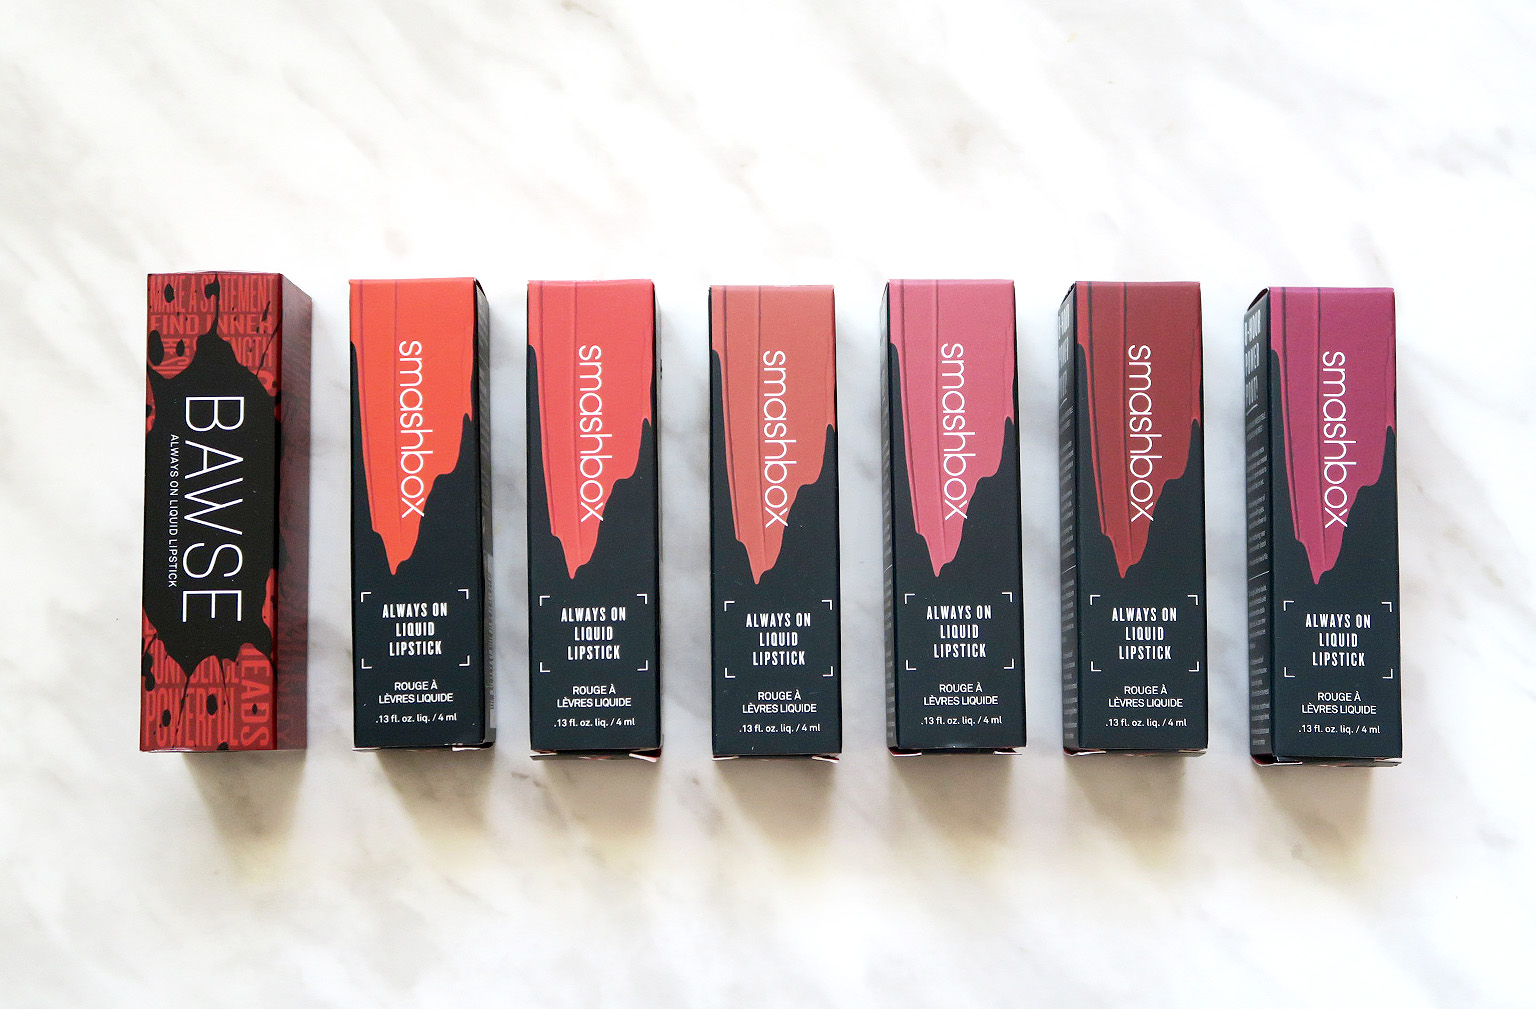 An indepth review of Smashbox's Always On Matte Liquid Lipstick, with swatches!